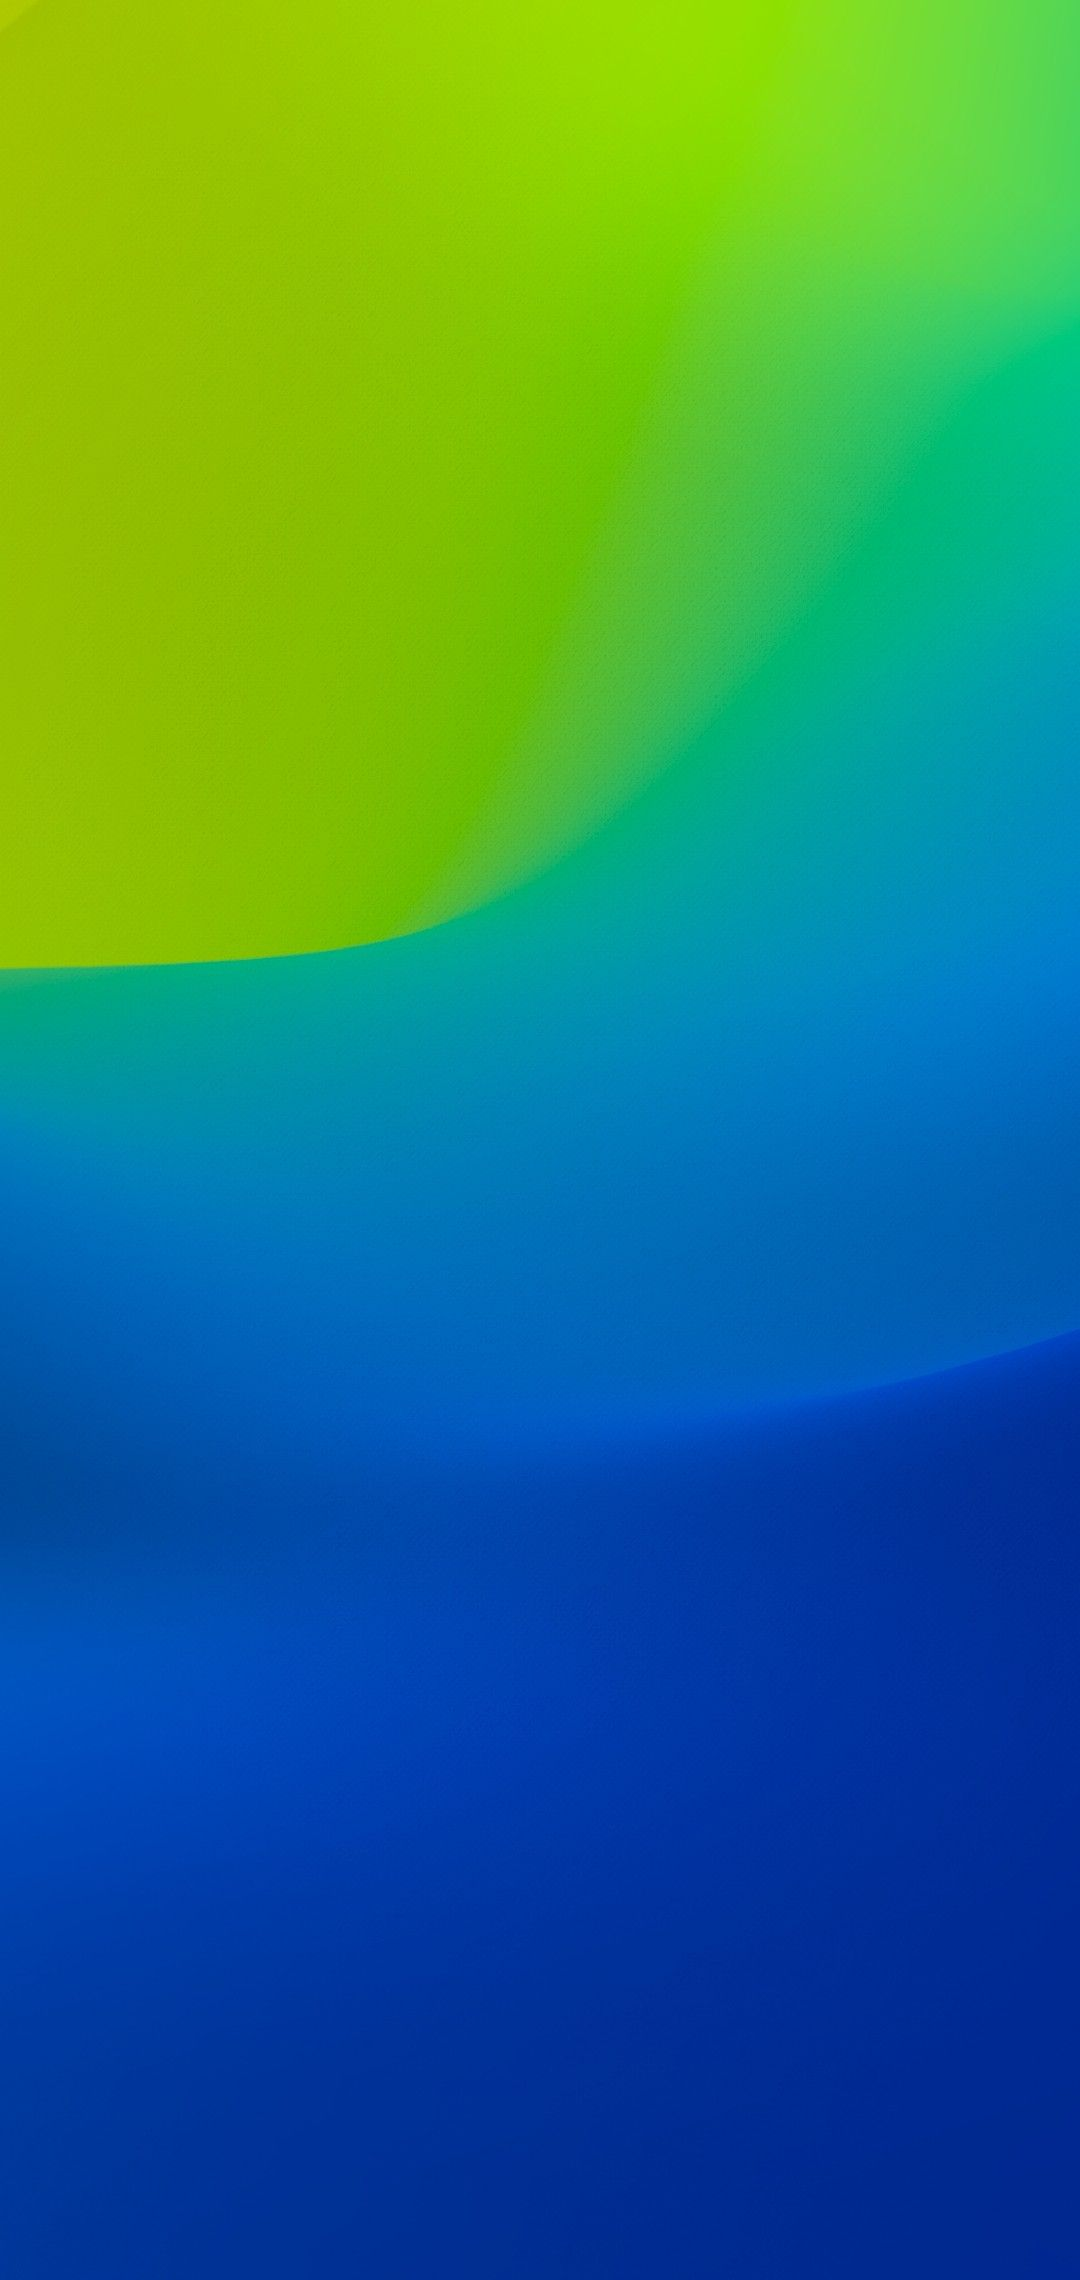 Ios 12 Iphone X Blue Green Clean Simple Abstract Apple